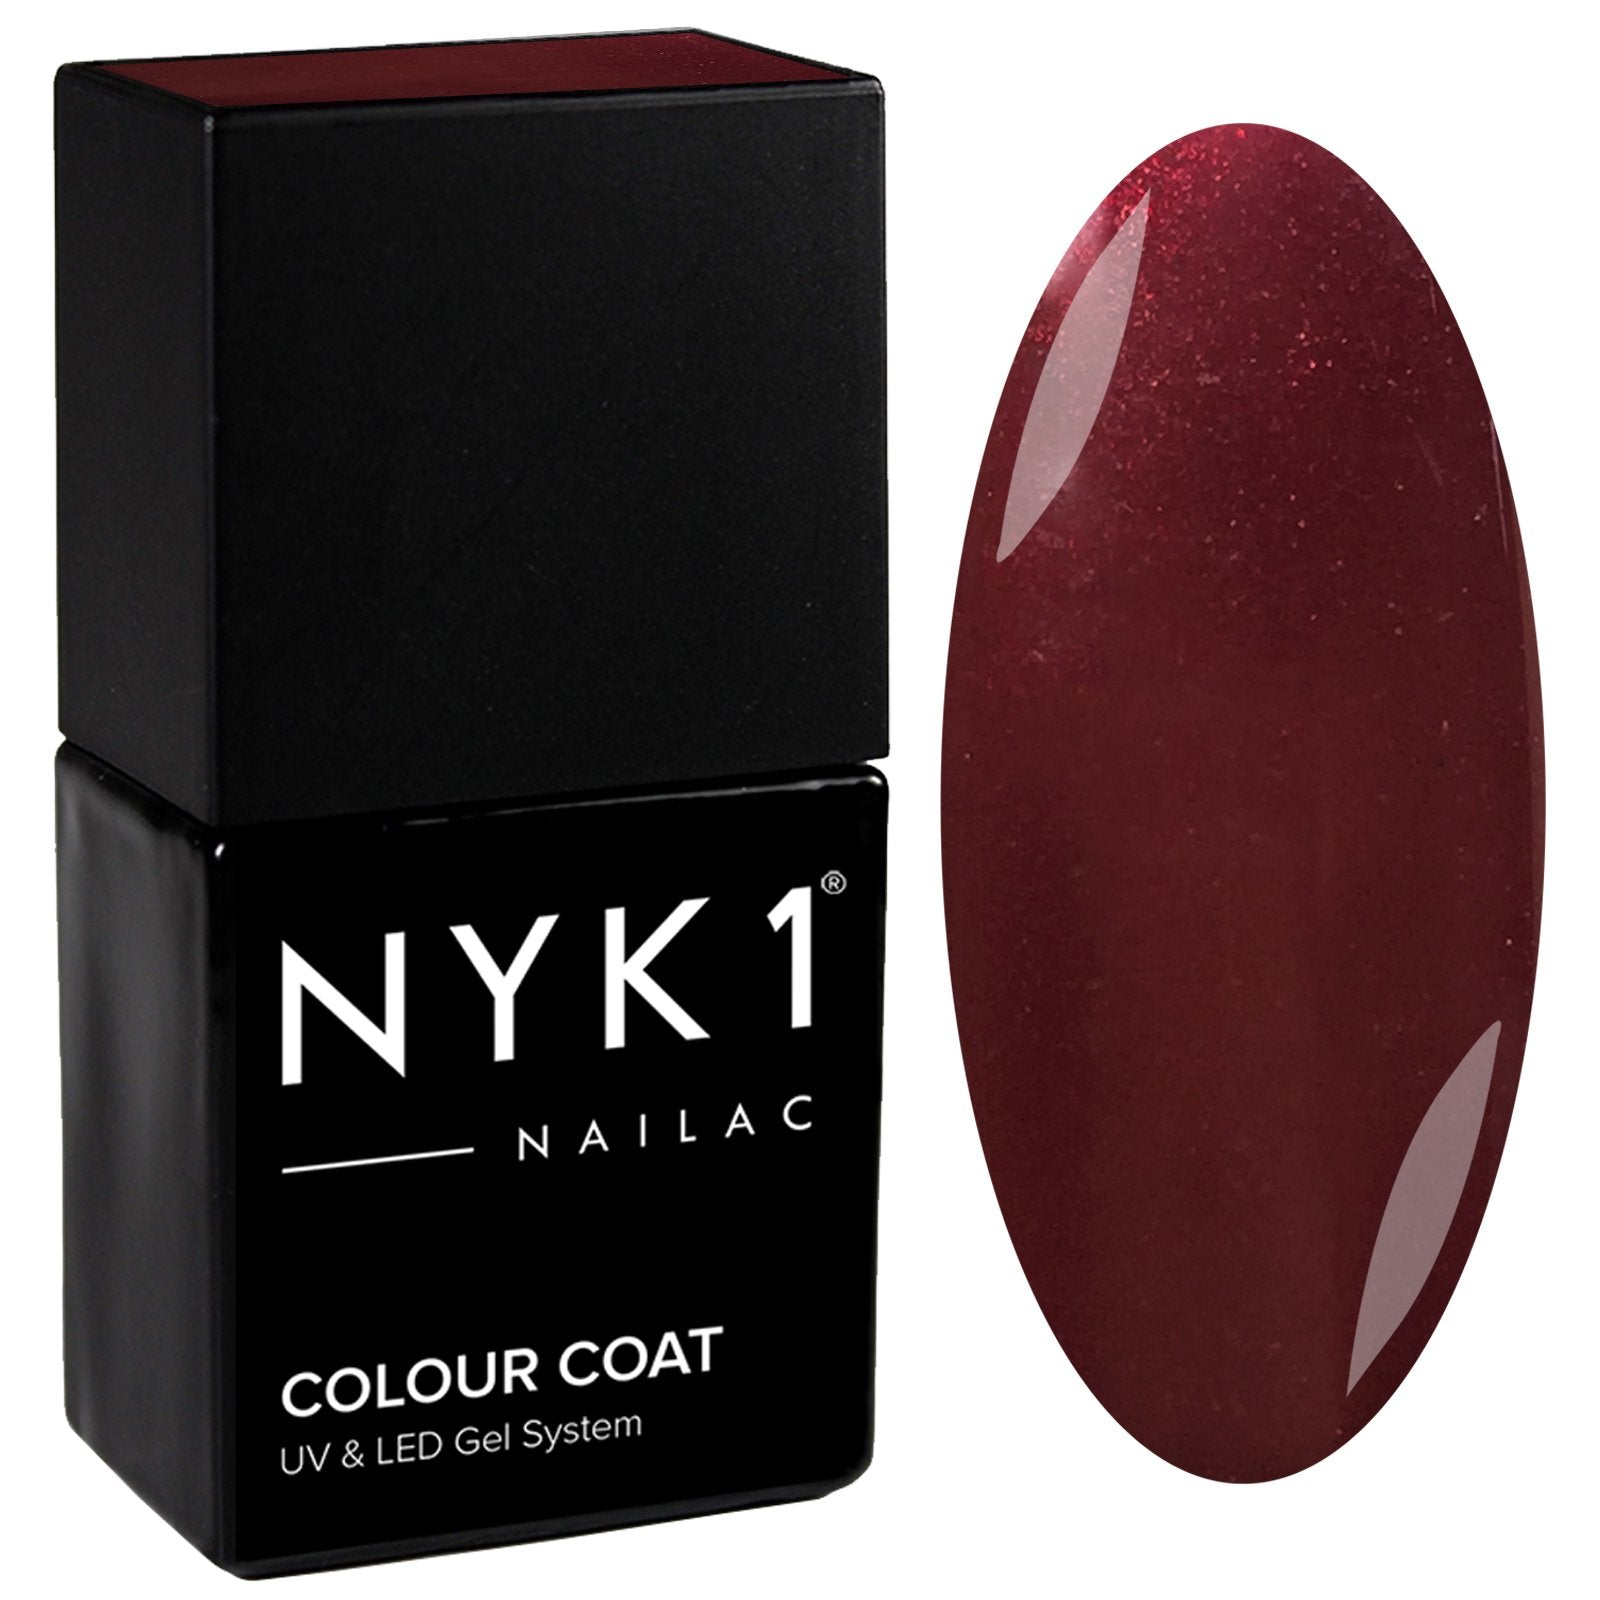 NYK1 Nailac Deep Dark Red Gel Nail Polish